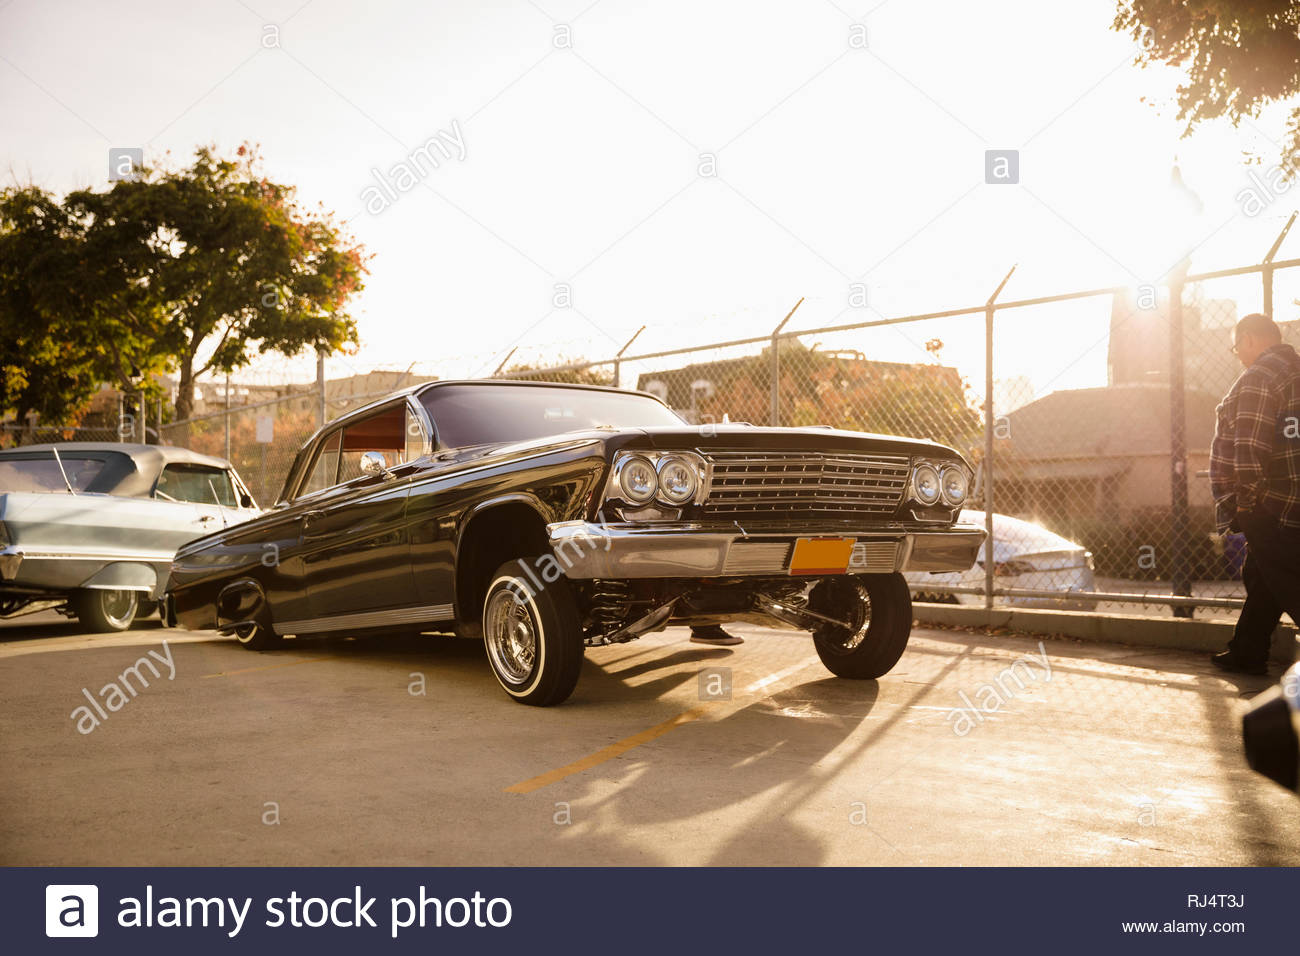 Low rider car in sunny parking lot - Stock Image